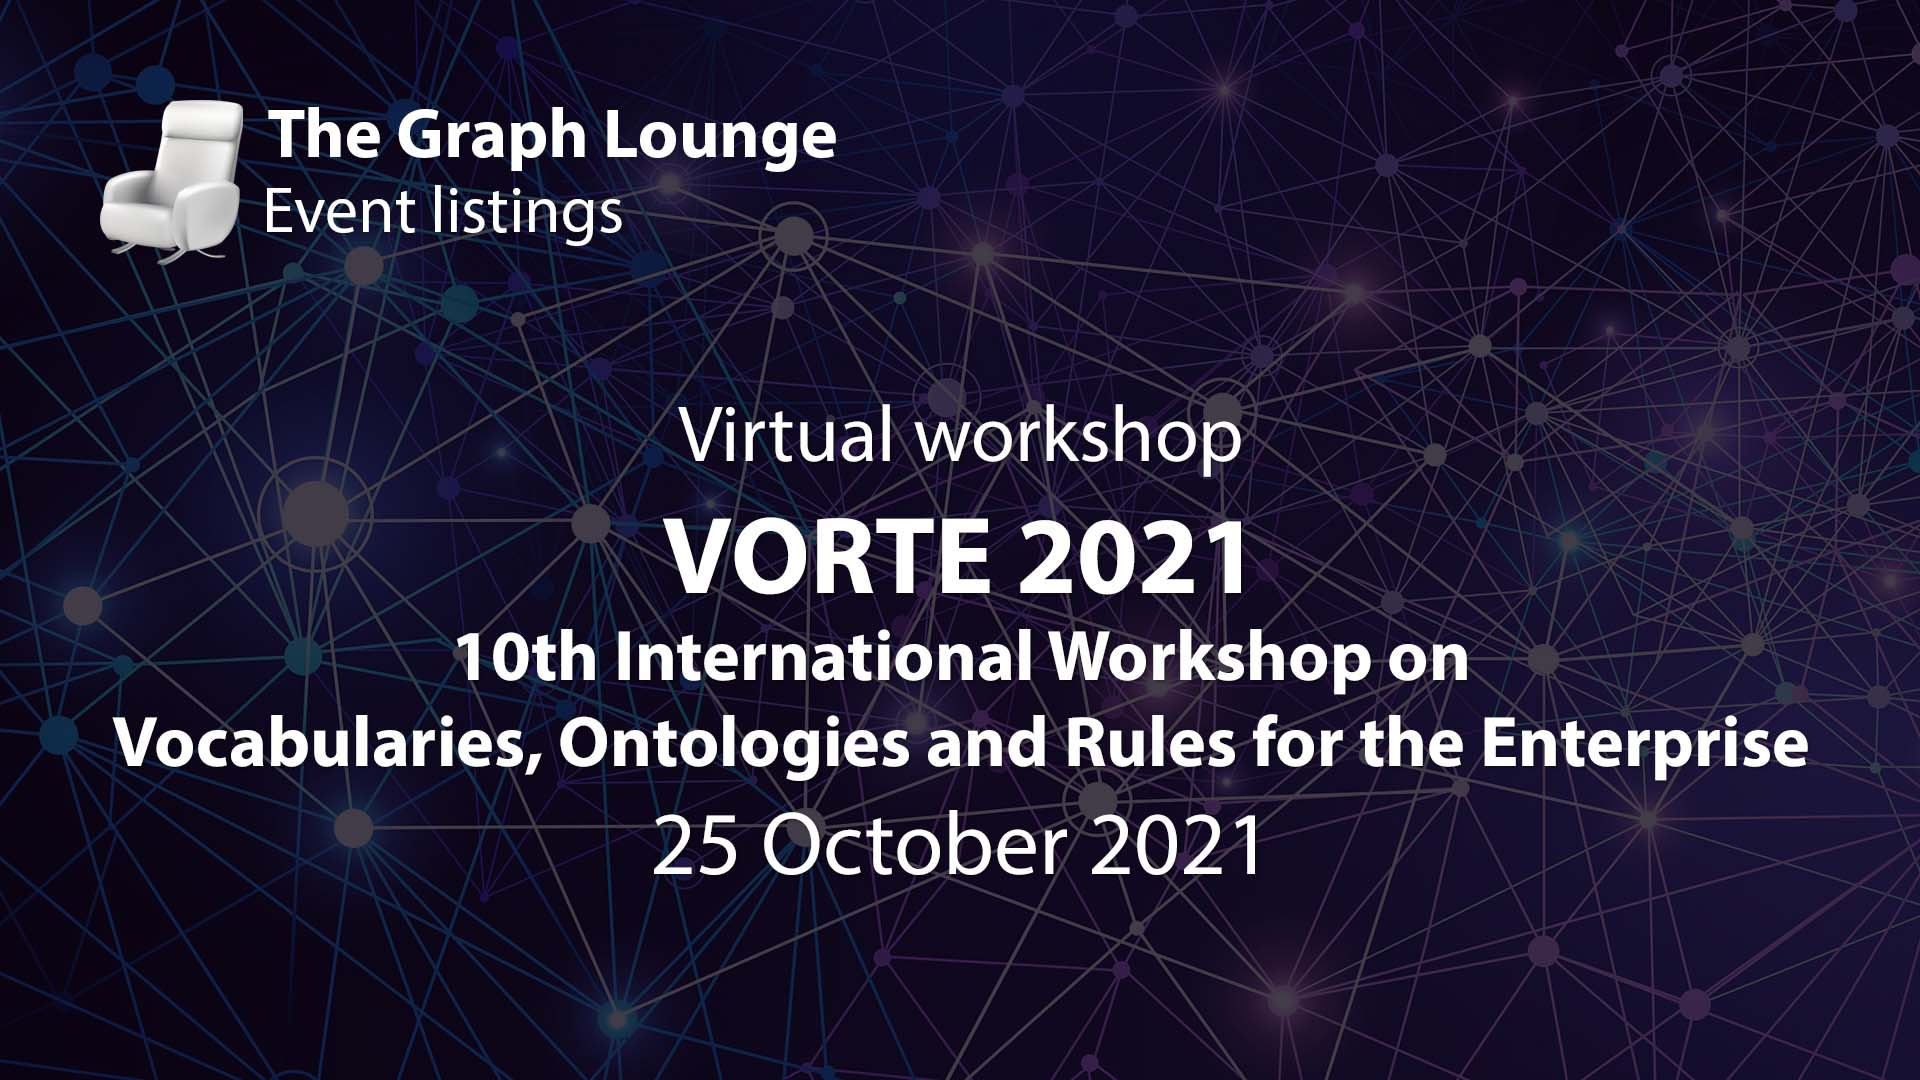 VORTE 2021 (10th International Workshop on Vocabularies, Ontologies and Rules for the Enterprise)